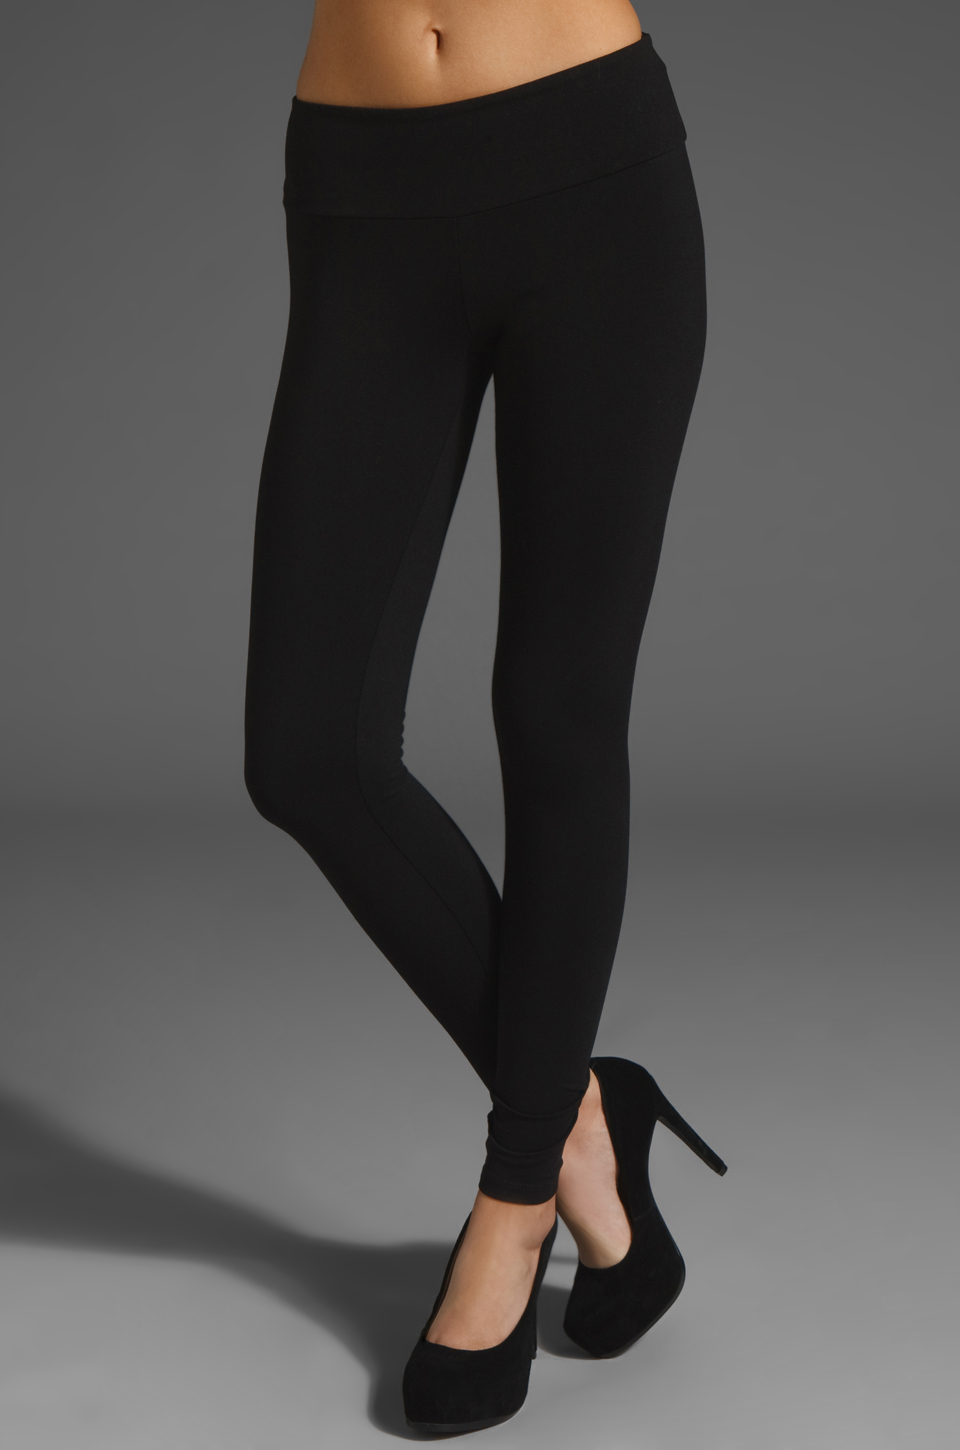 Susana Monaco Tights in Black